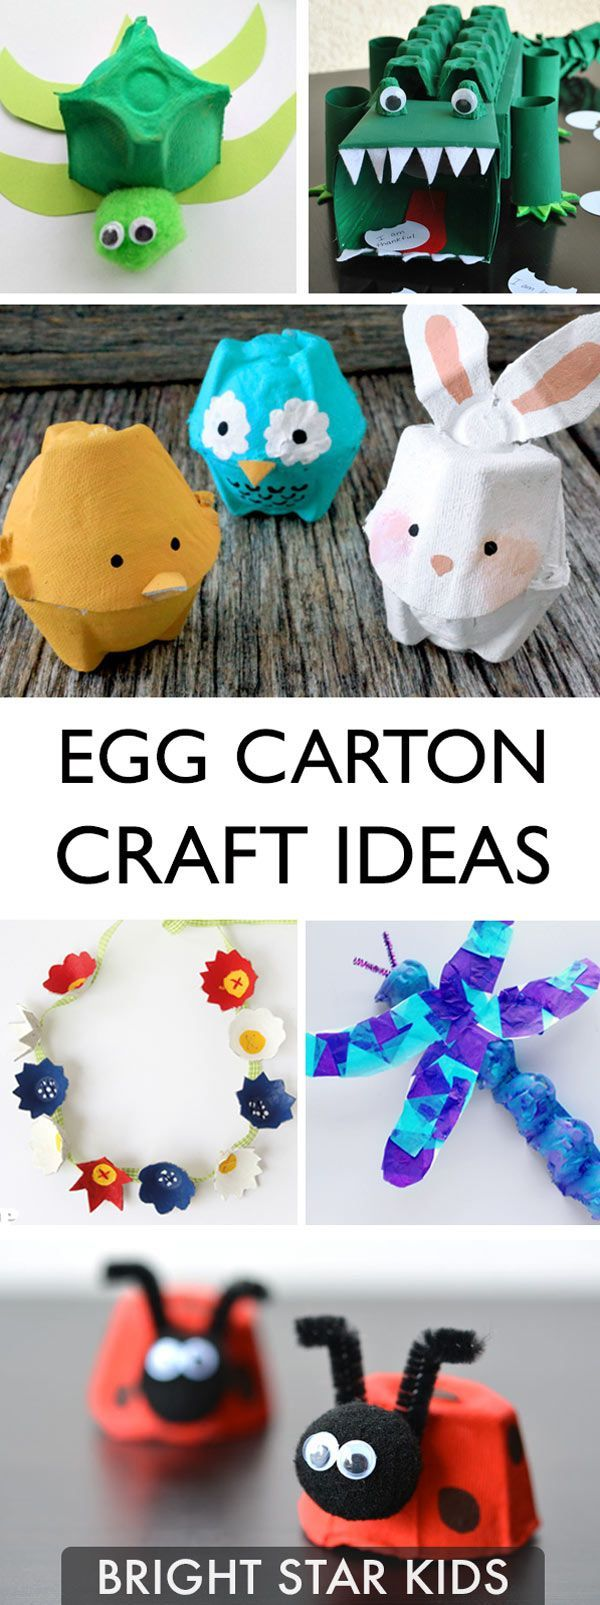 396 best cute craft ideas images on pinterest diy room for Egg carton room